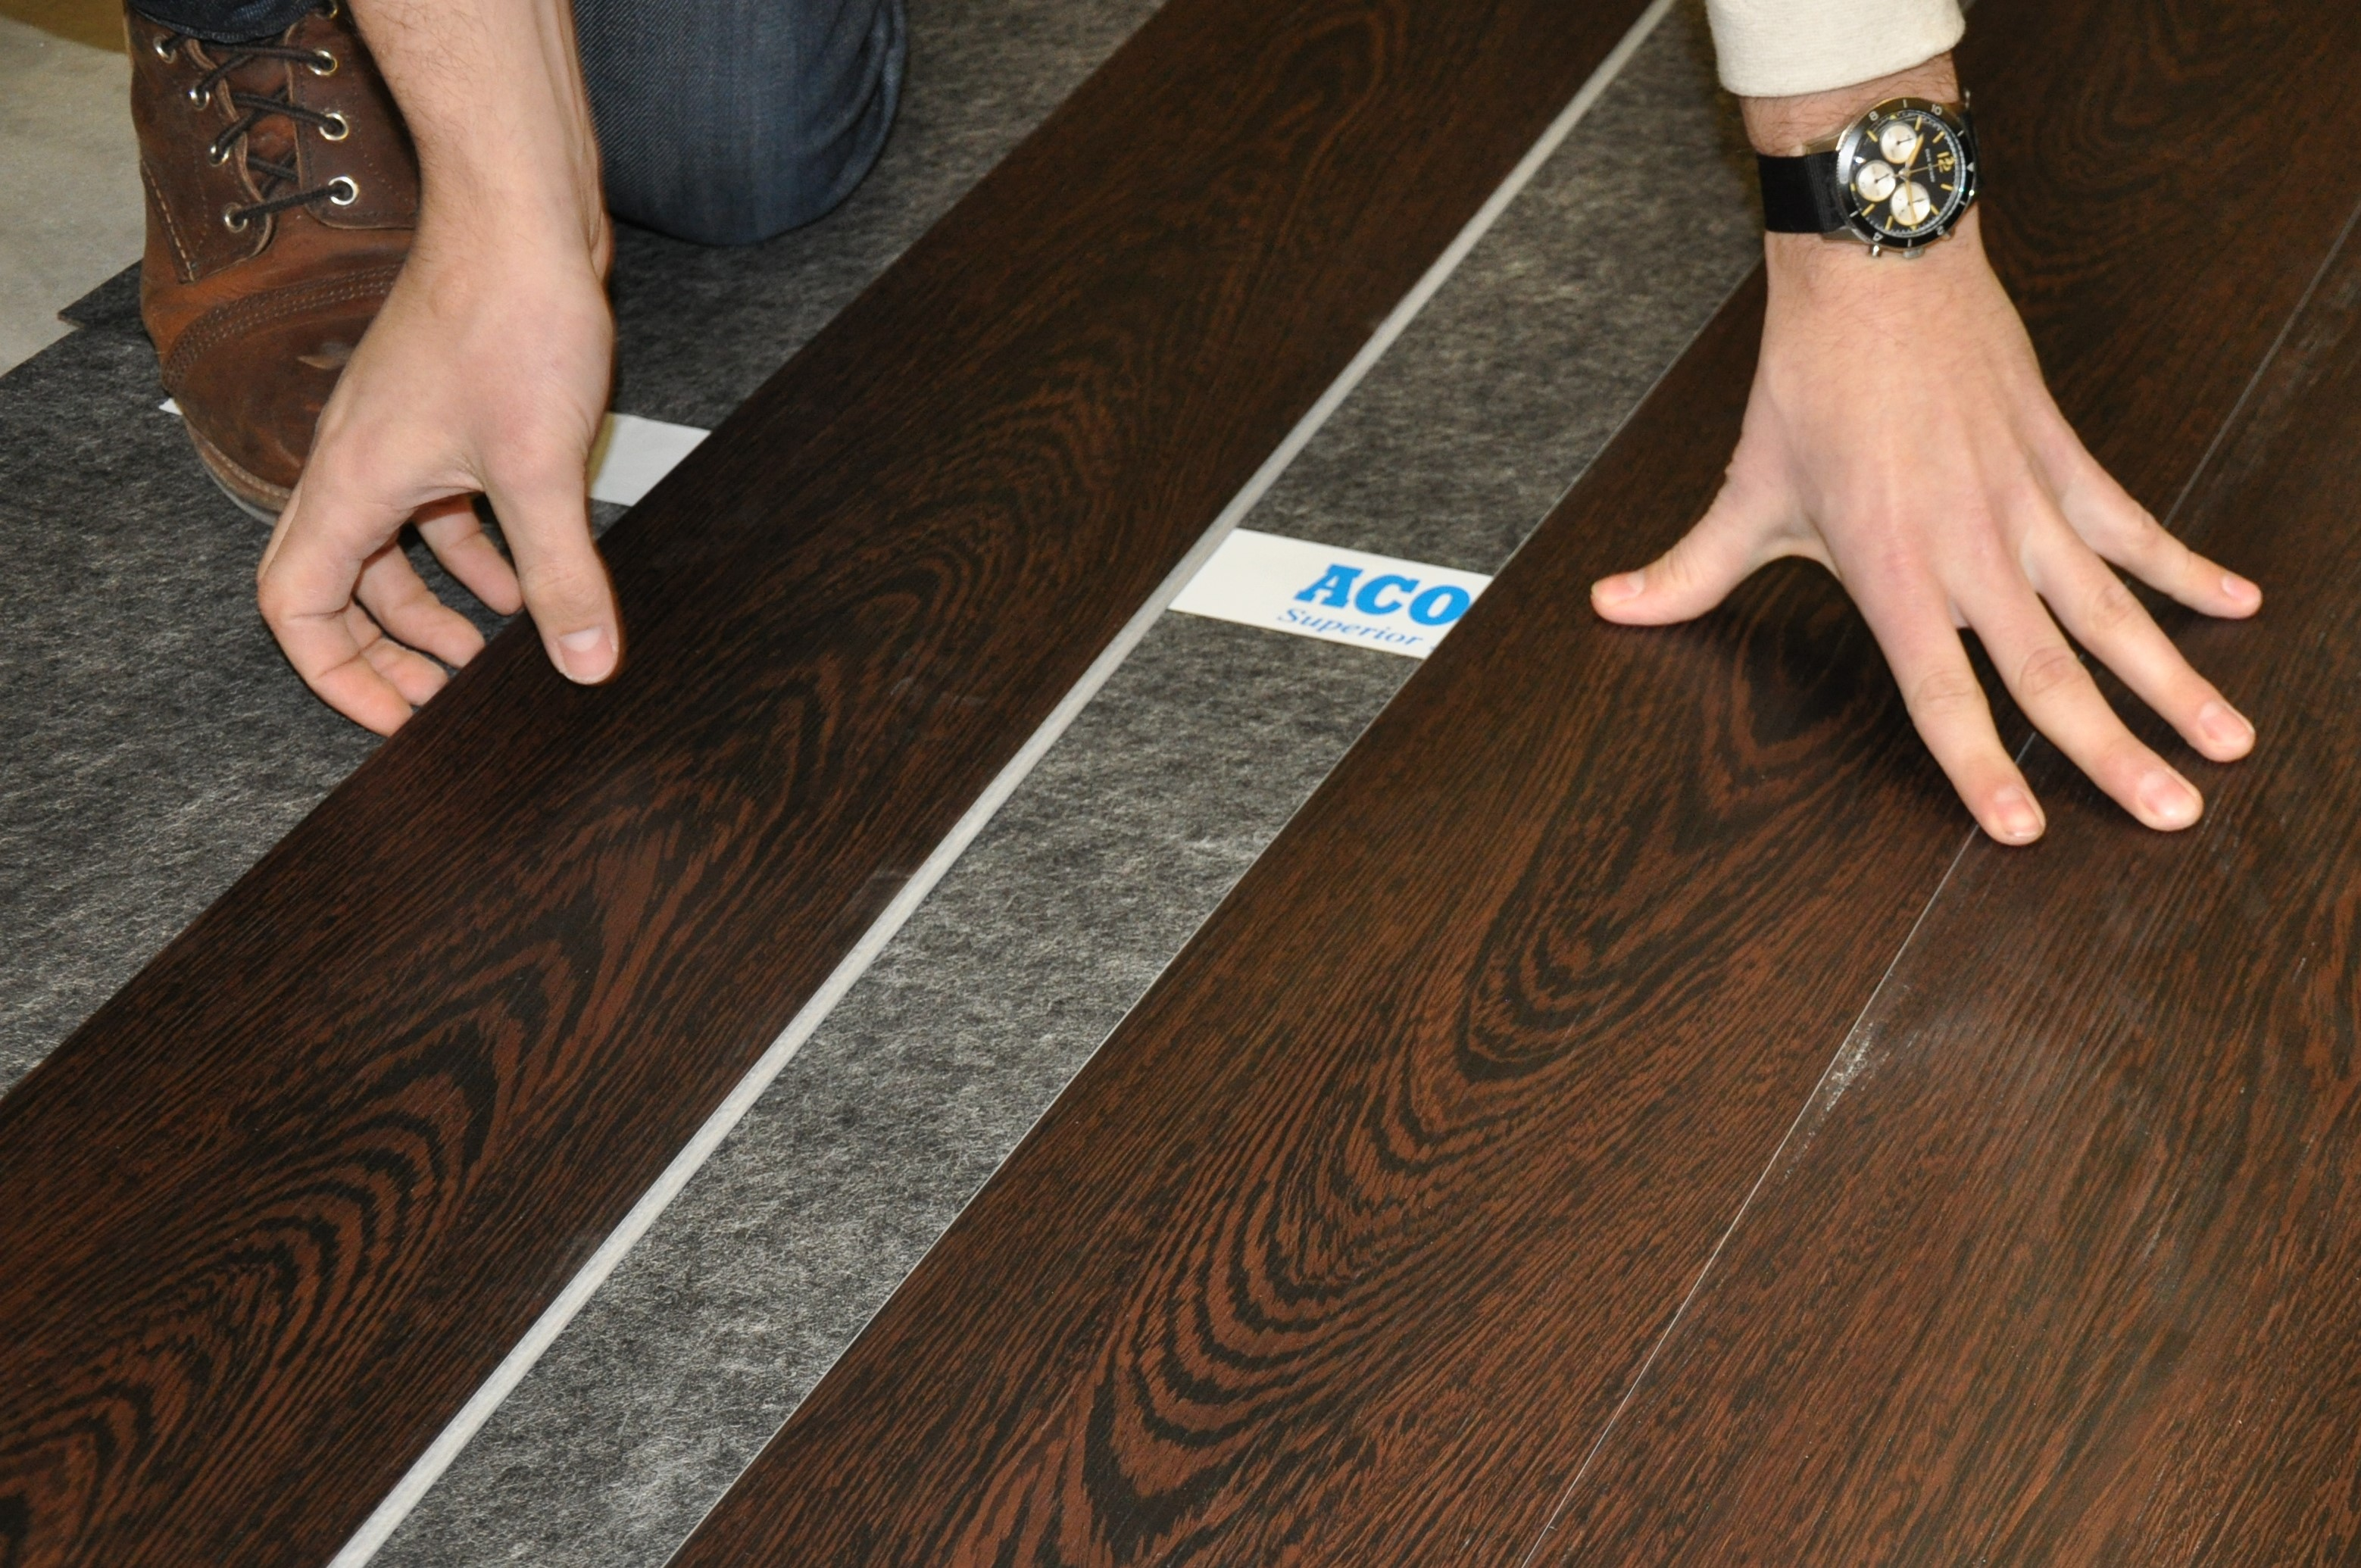 Acousti-Mat offers acoustical control